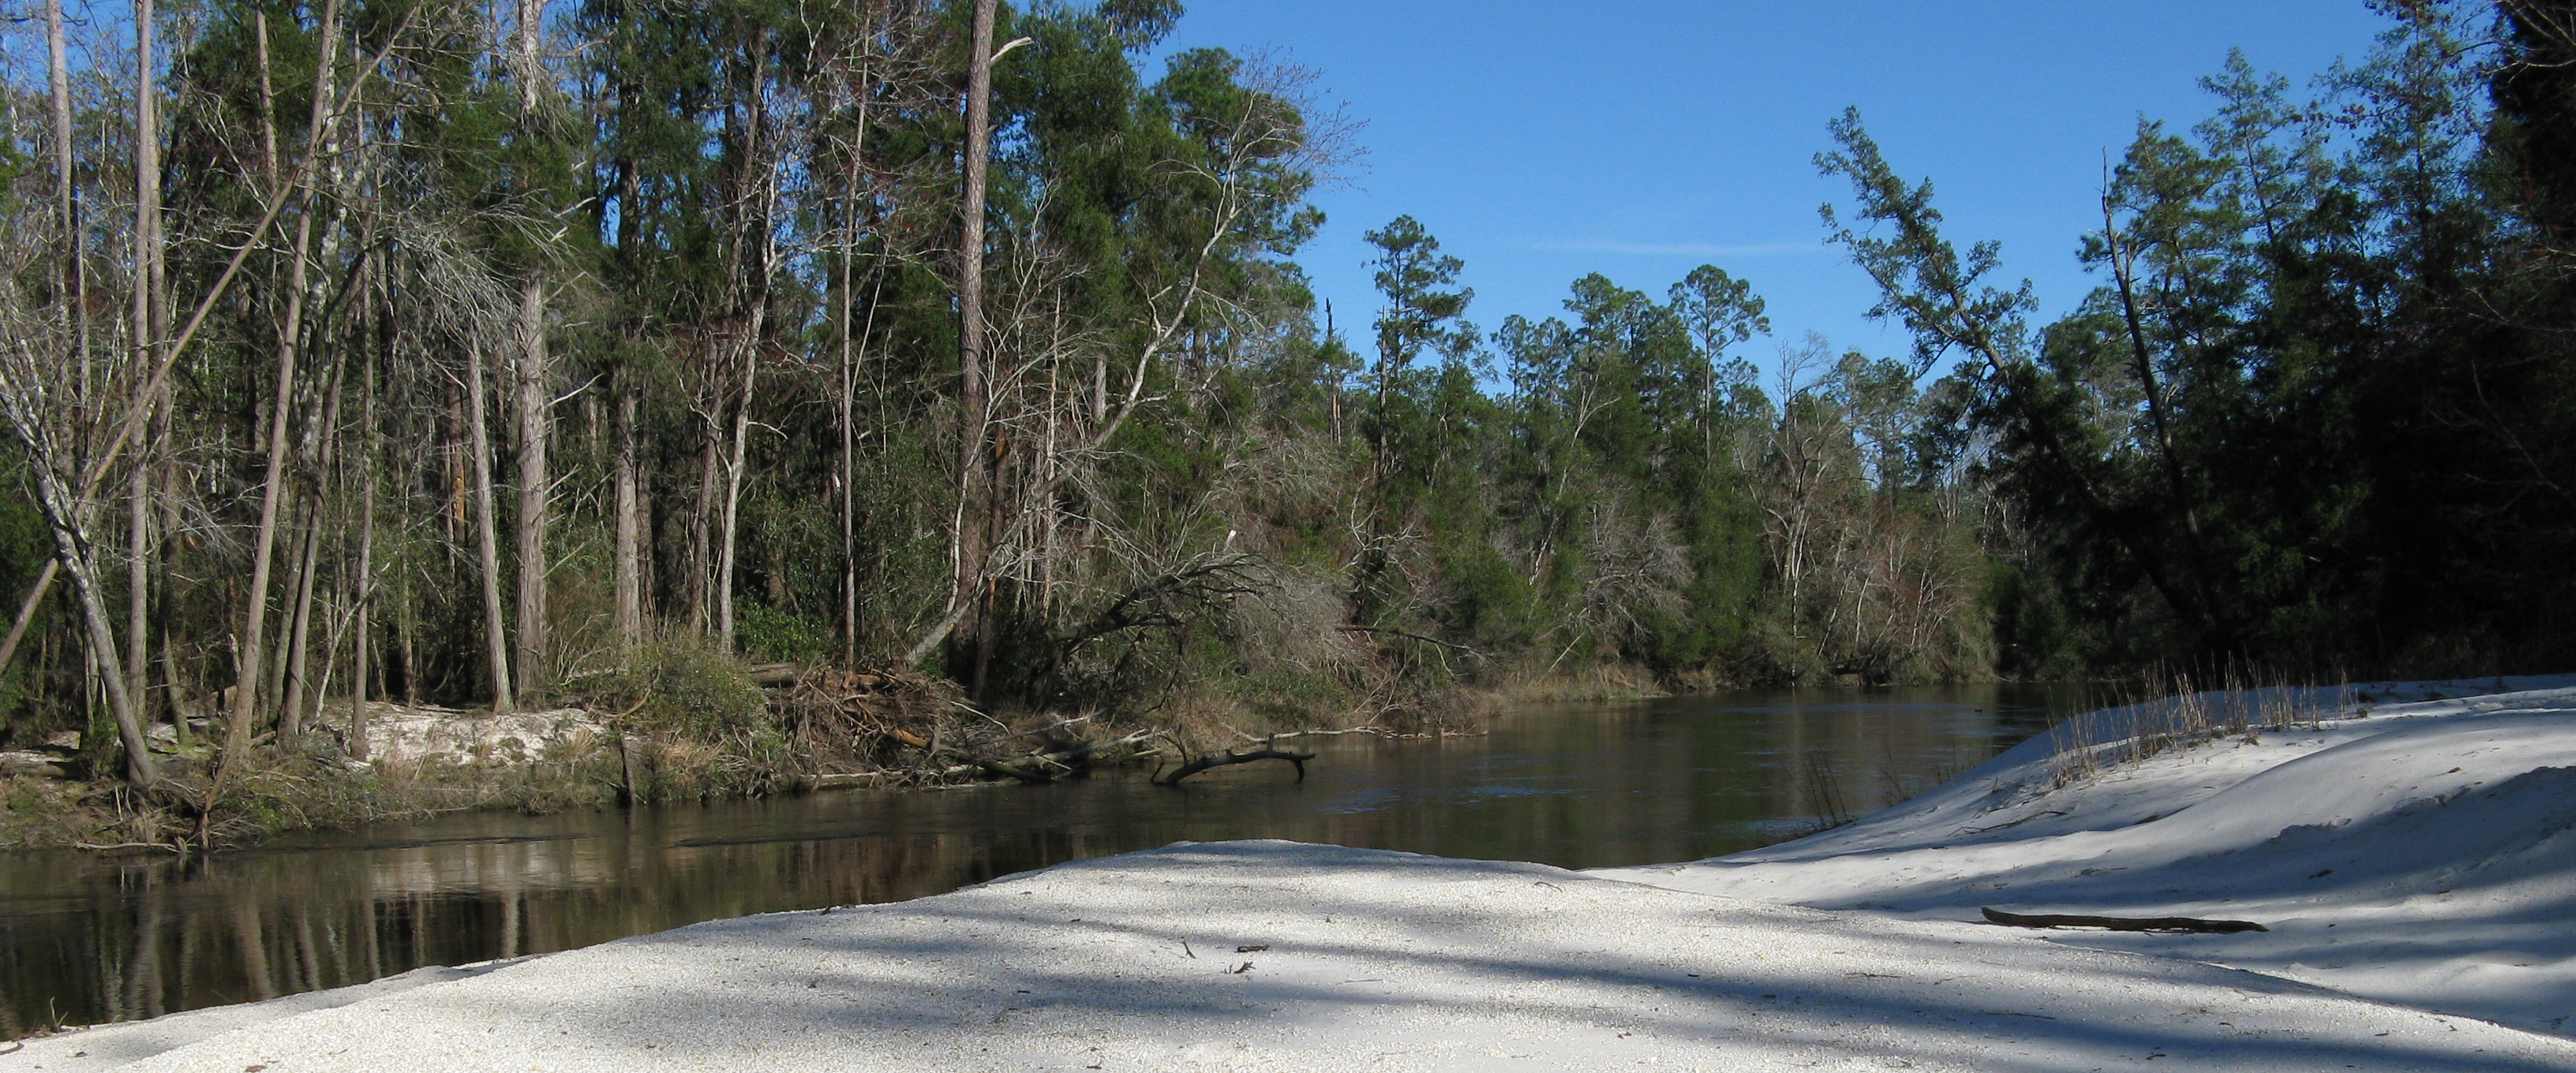 Alabama Restoration Area Draft Plan for Recreation and Birds Released